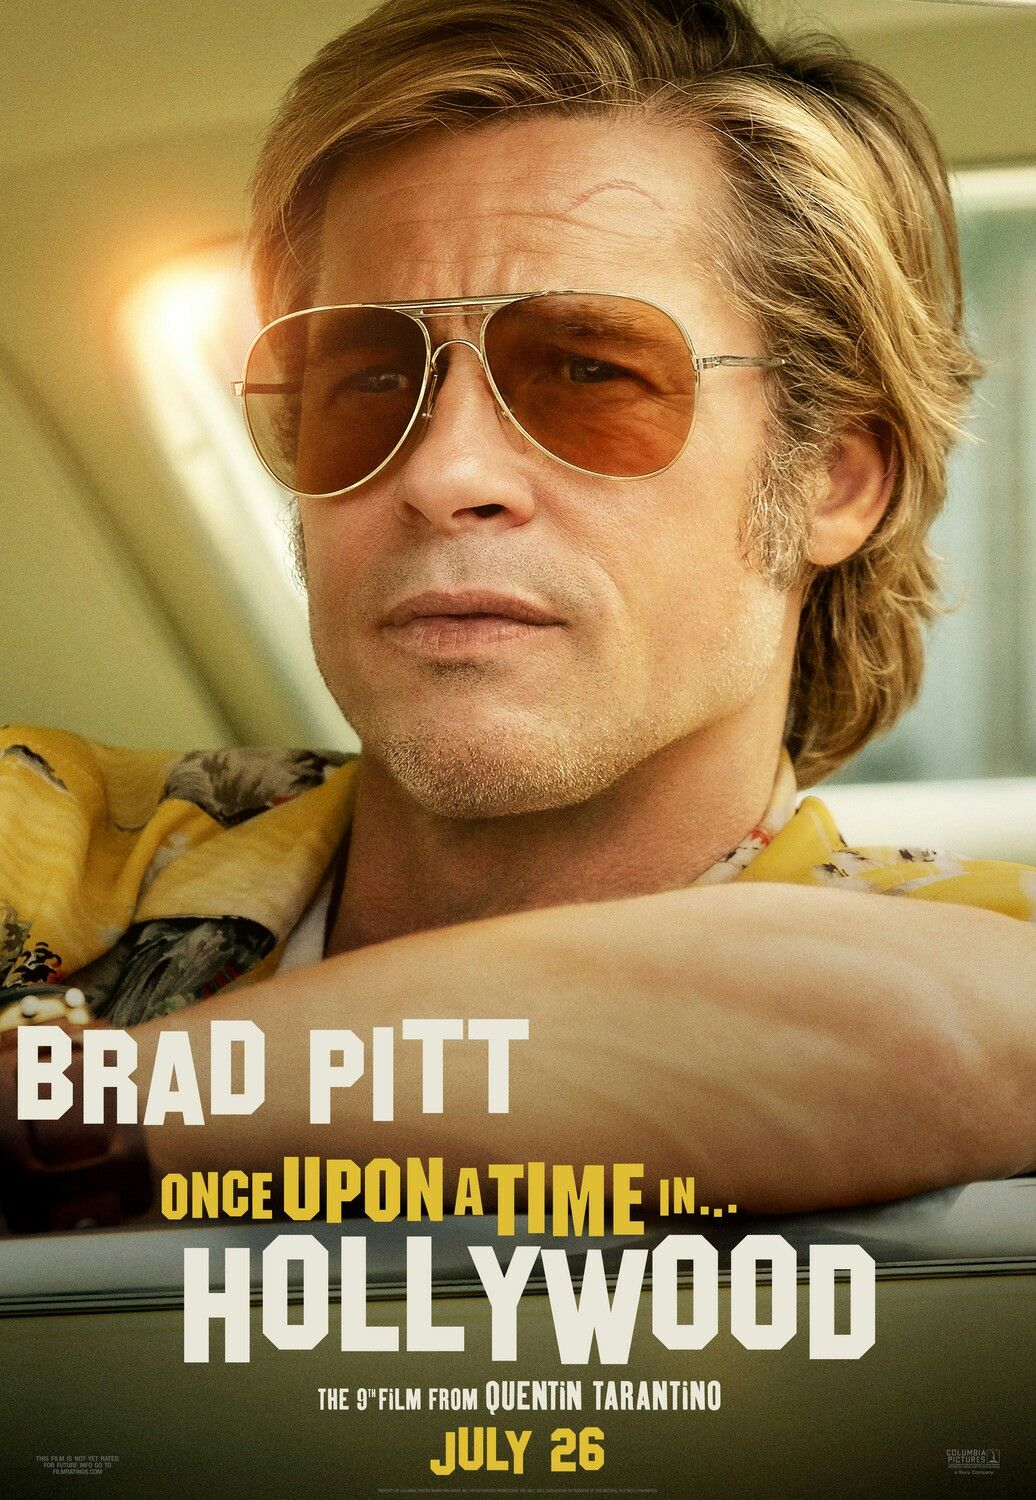 New character poster for ERA UMA VEZ EM HOLLYWOOD (ONCE UPON A TIME IN HOLLYWOOD) | Brad pitt, Cartazes de cinema, Hollywood